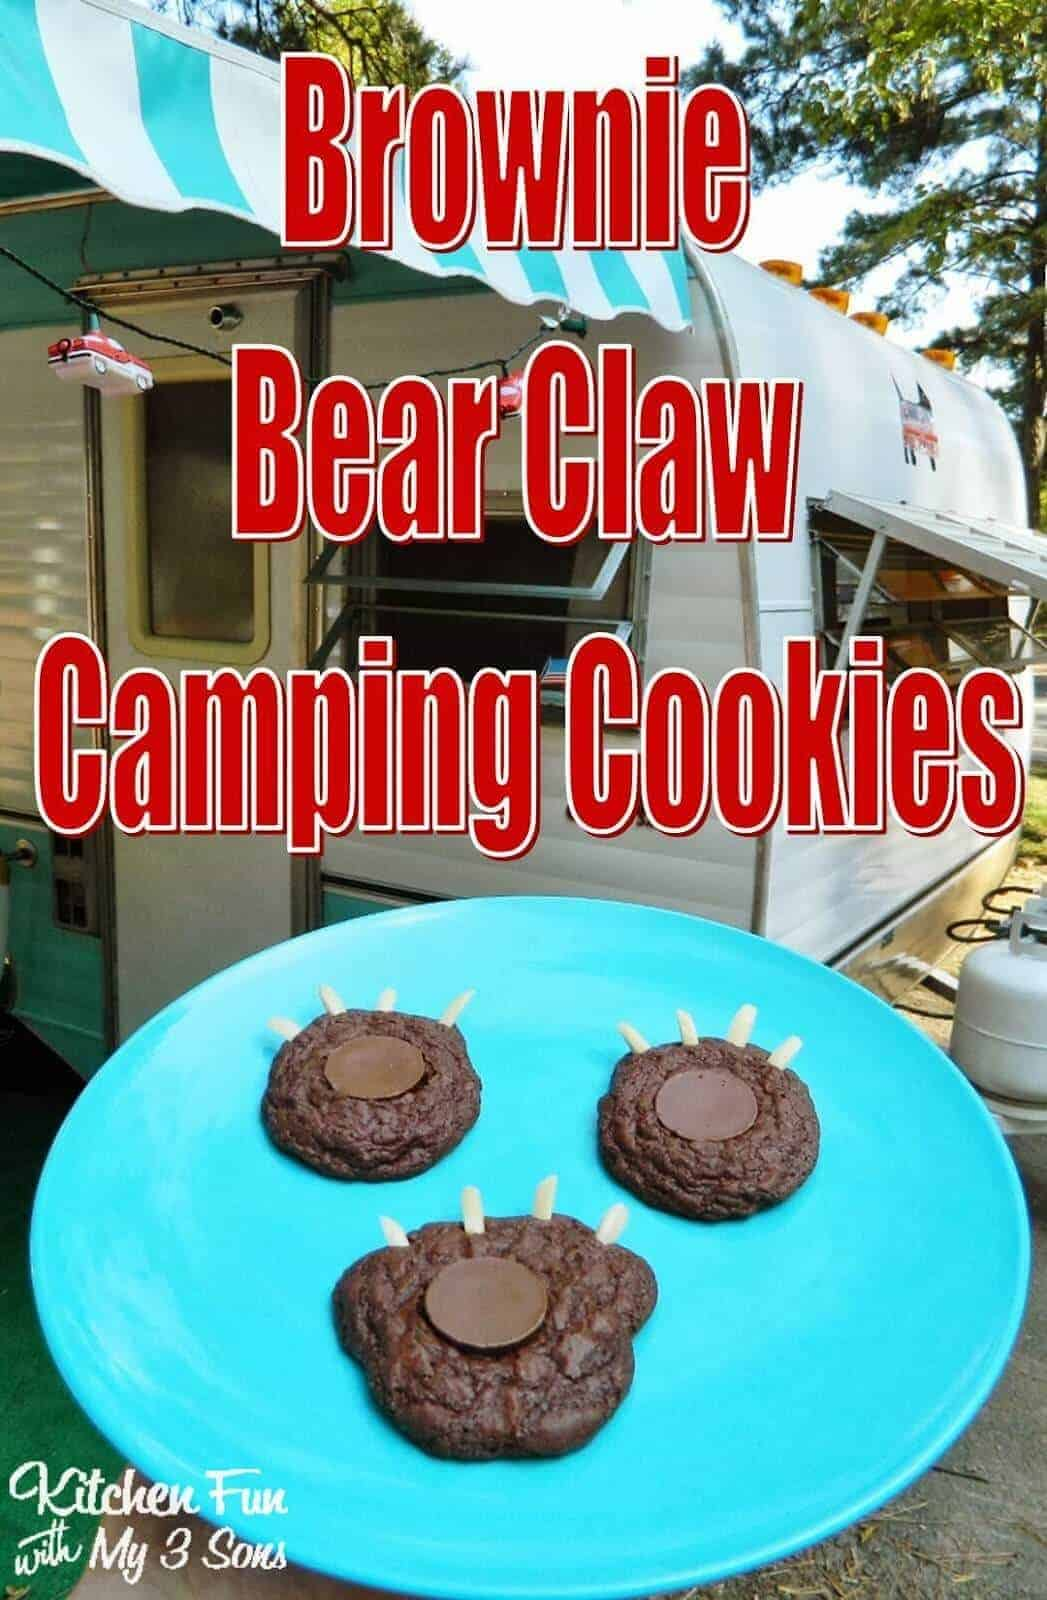 Brownie Bear Claw Camping Cookies by Kitchen Fun with My 3 Sons   Amazingly delicious camping recipes